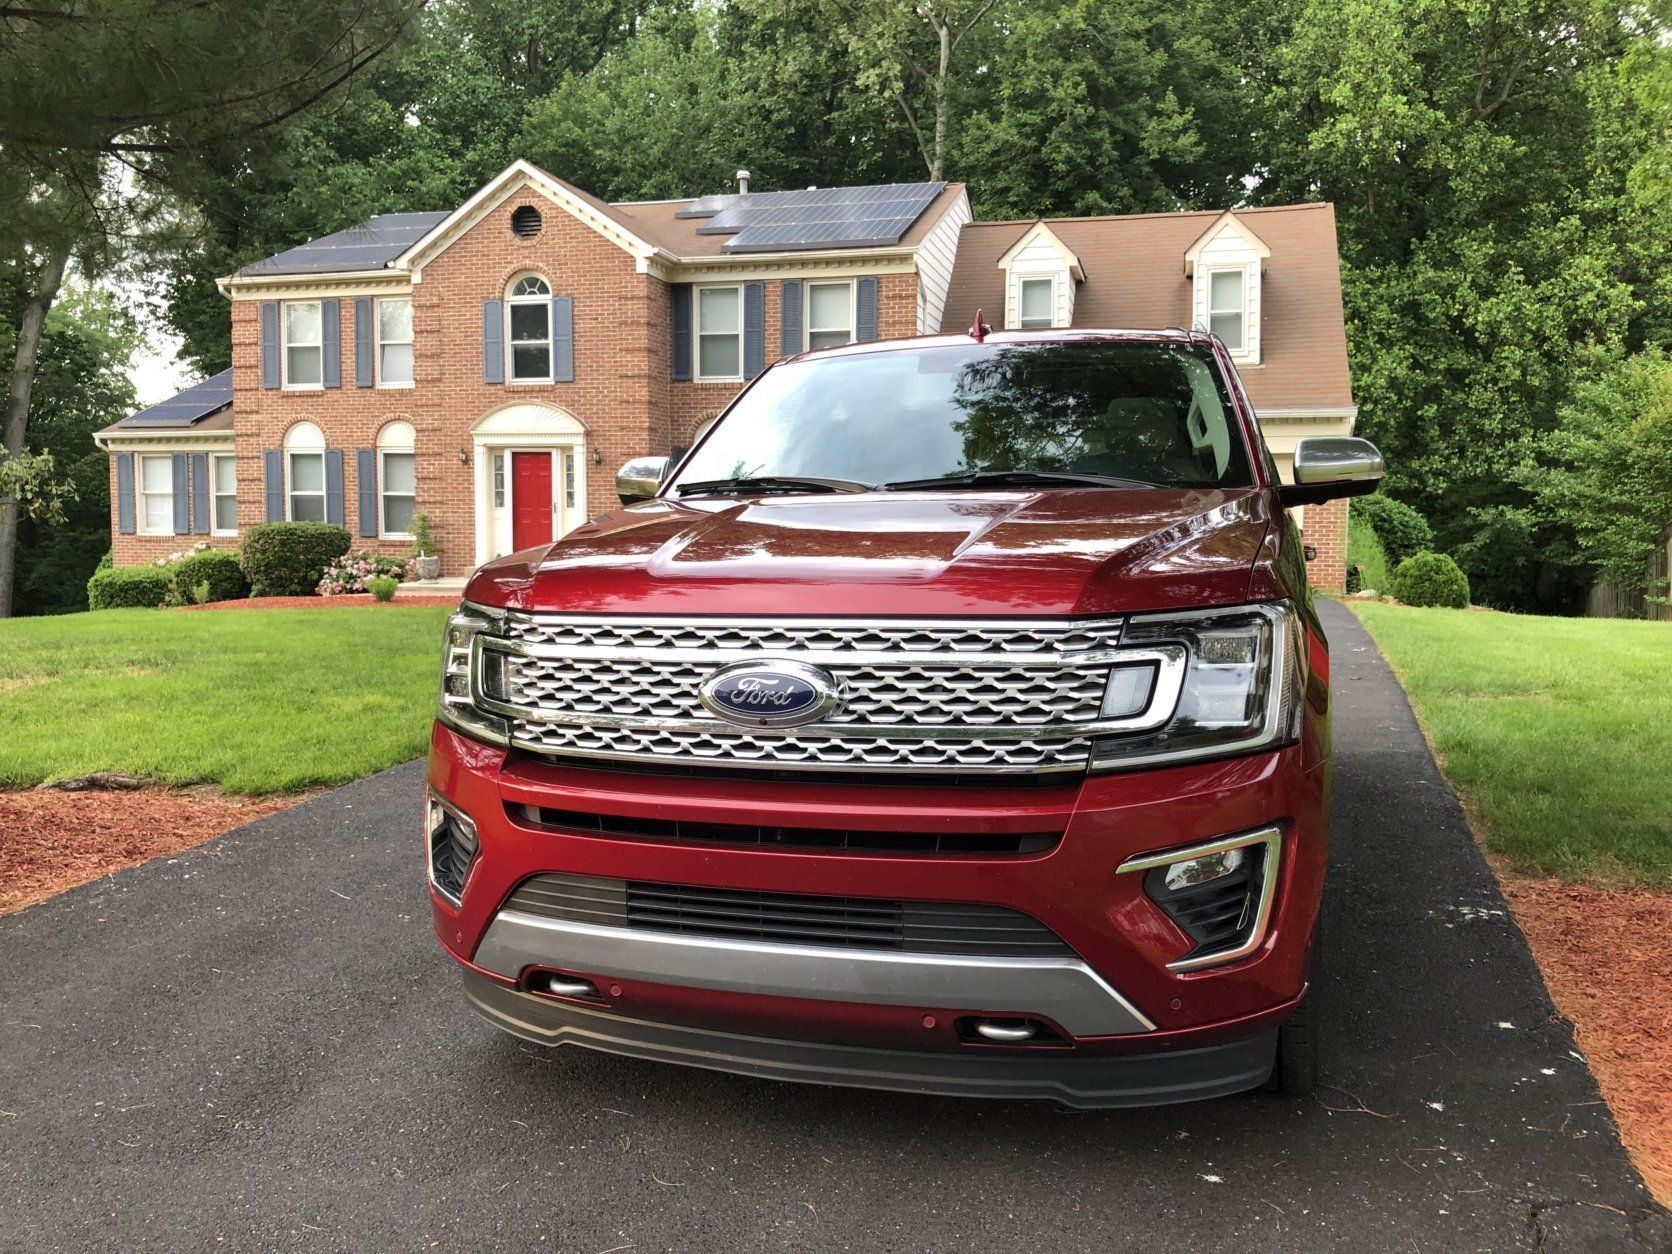 The exterior of the Expedition has SUV-tough looks but with more sophistication than I can remember with the model. (WTOP/Mike Parris)